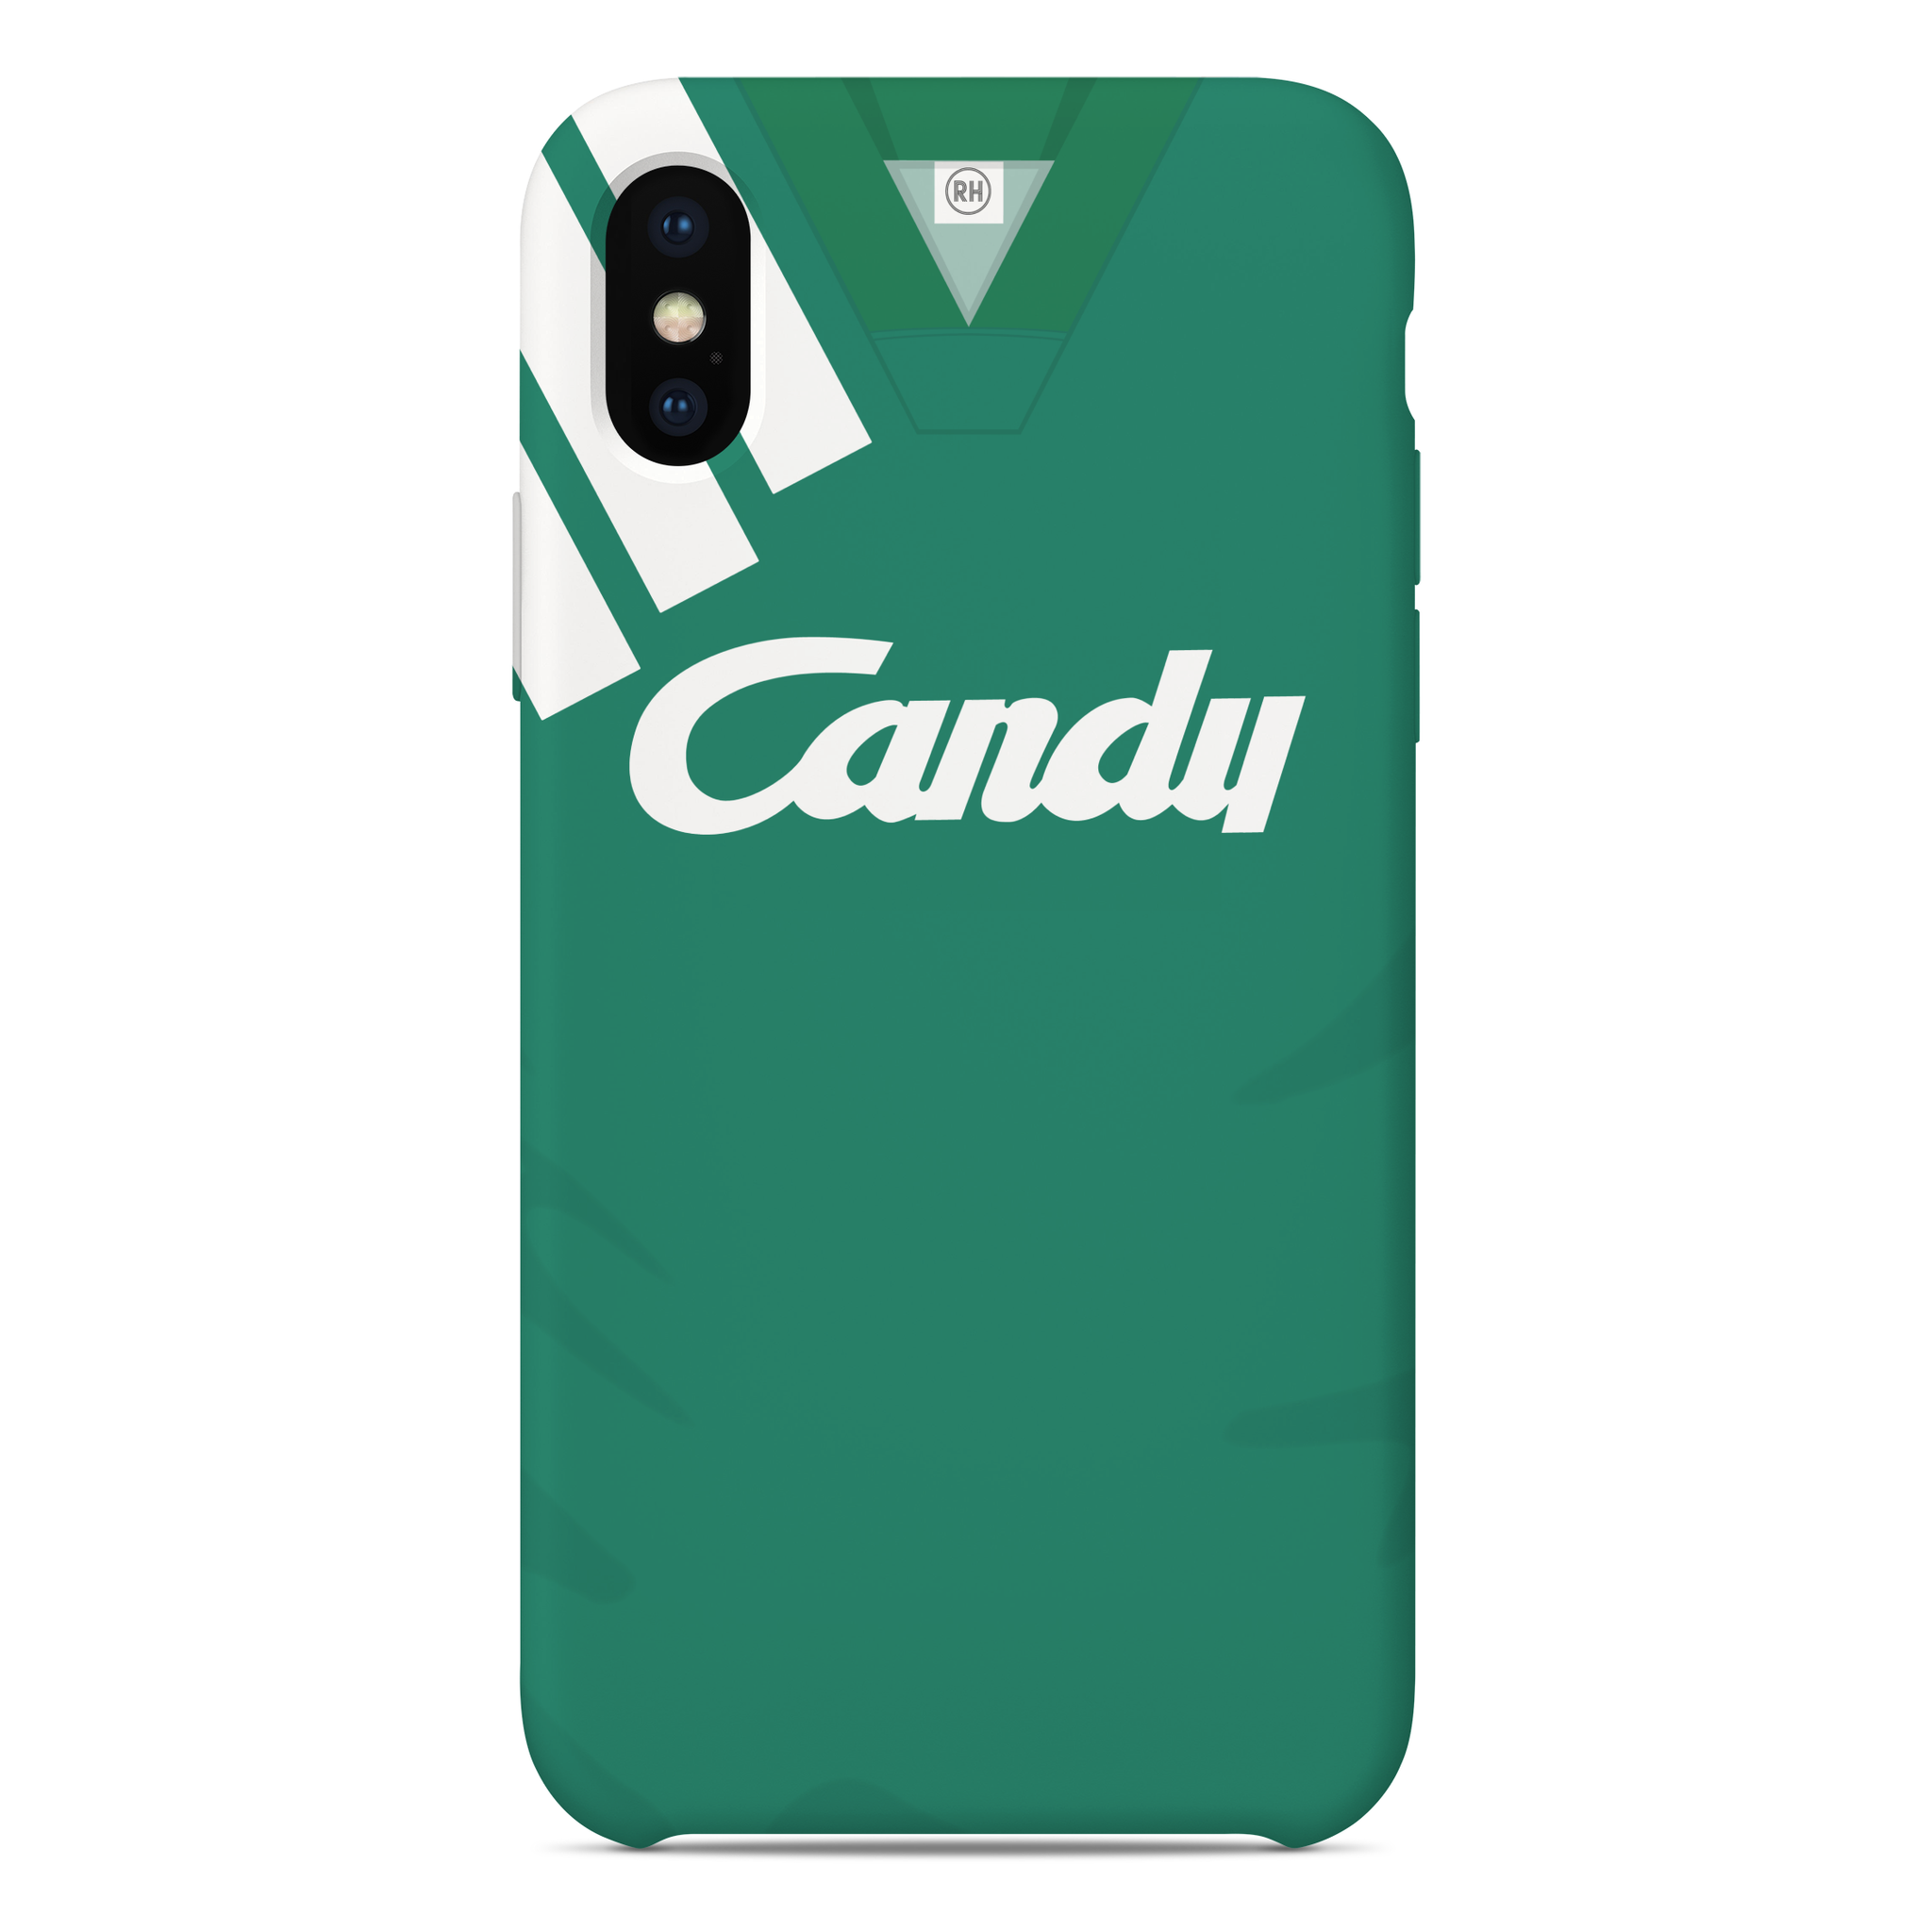 LIVERPOOL INSPIRED PHONE CASE 1991 AWAY